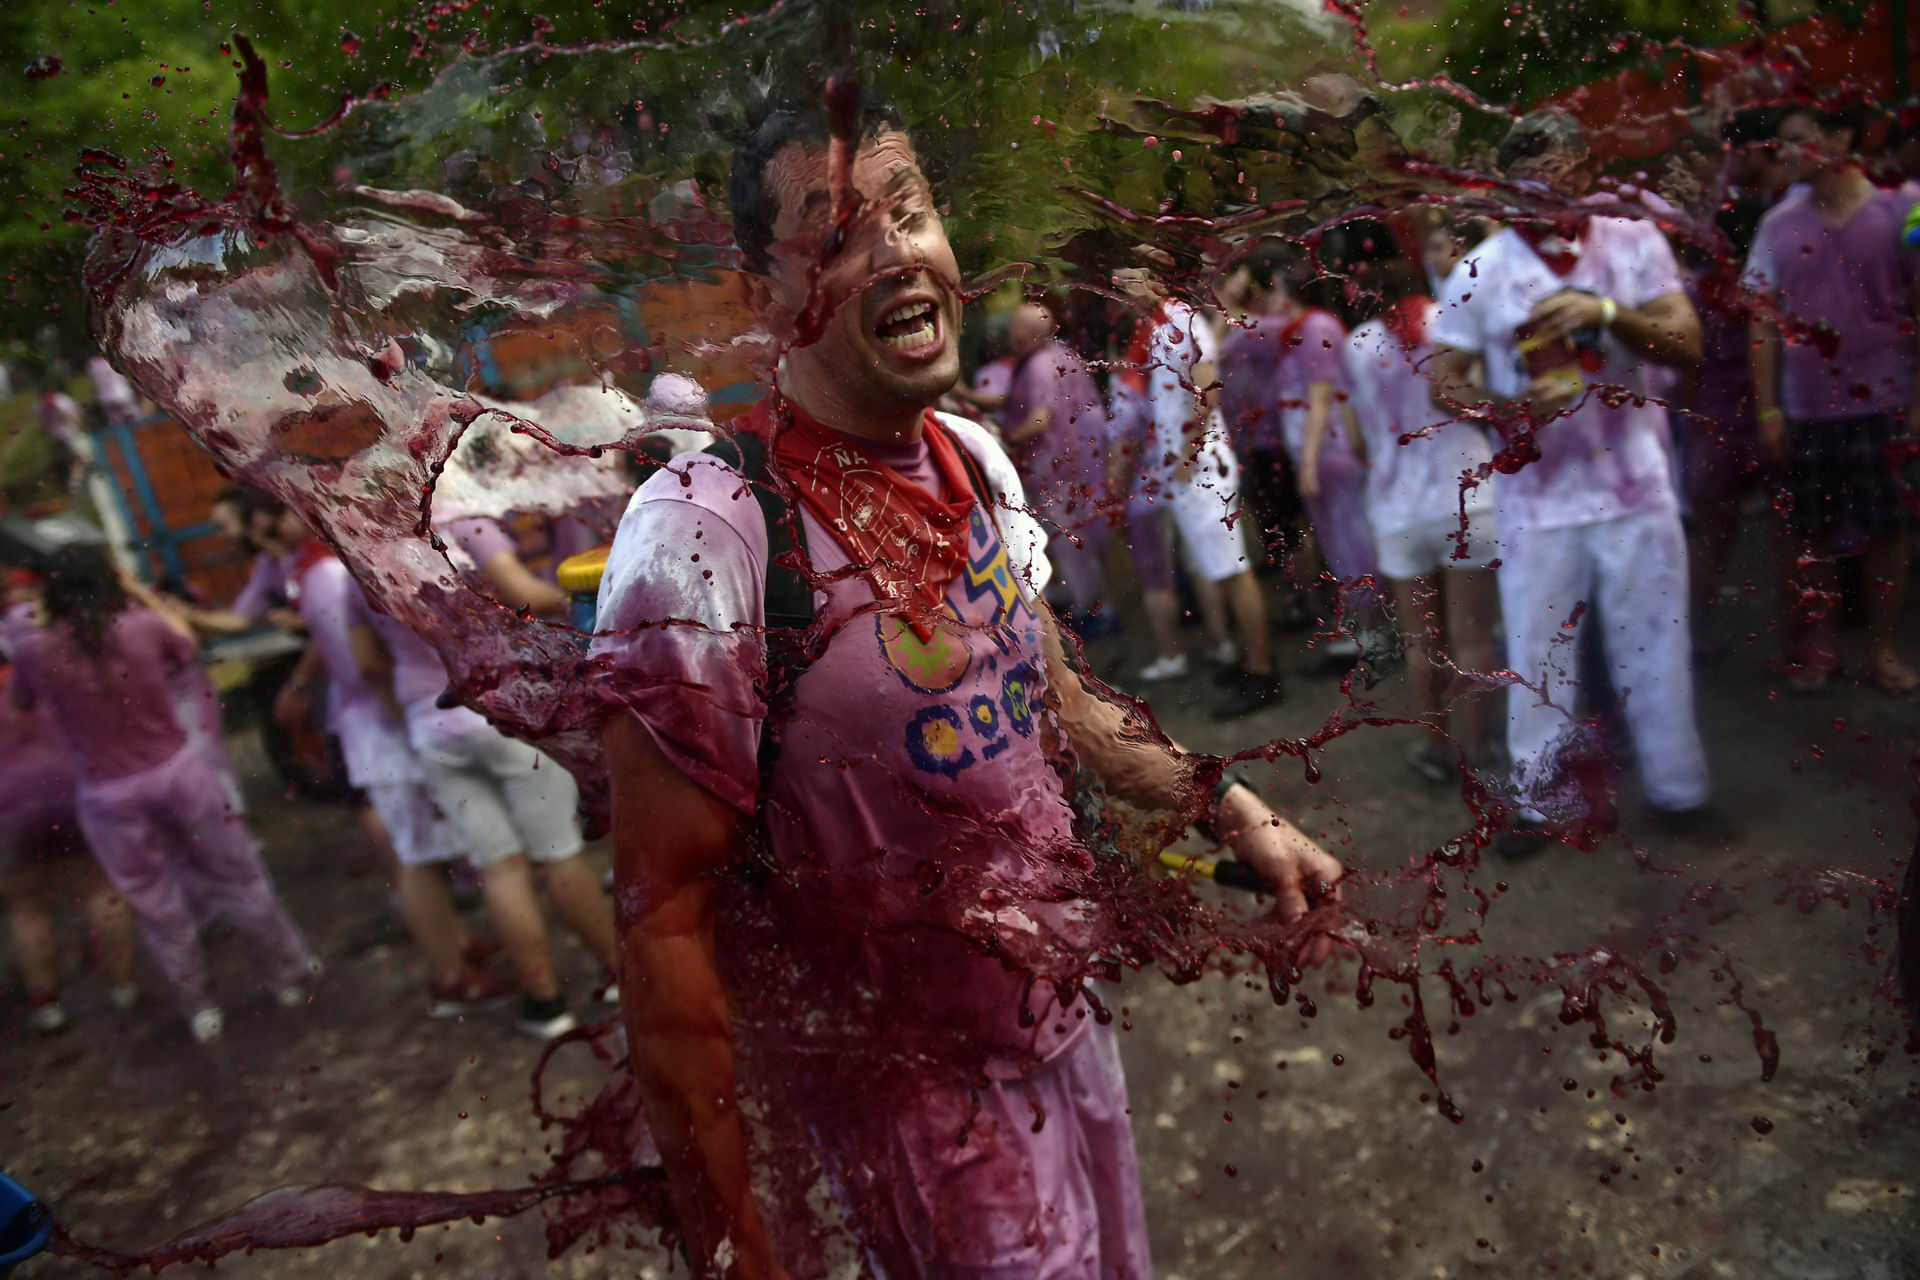 revellers battle it out with wine in Spain